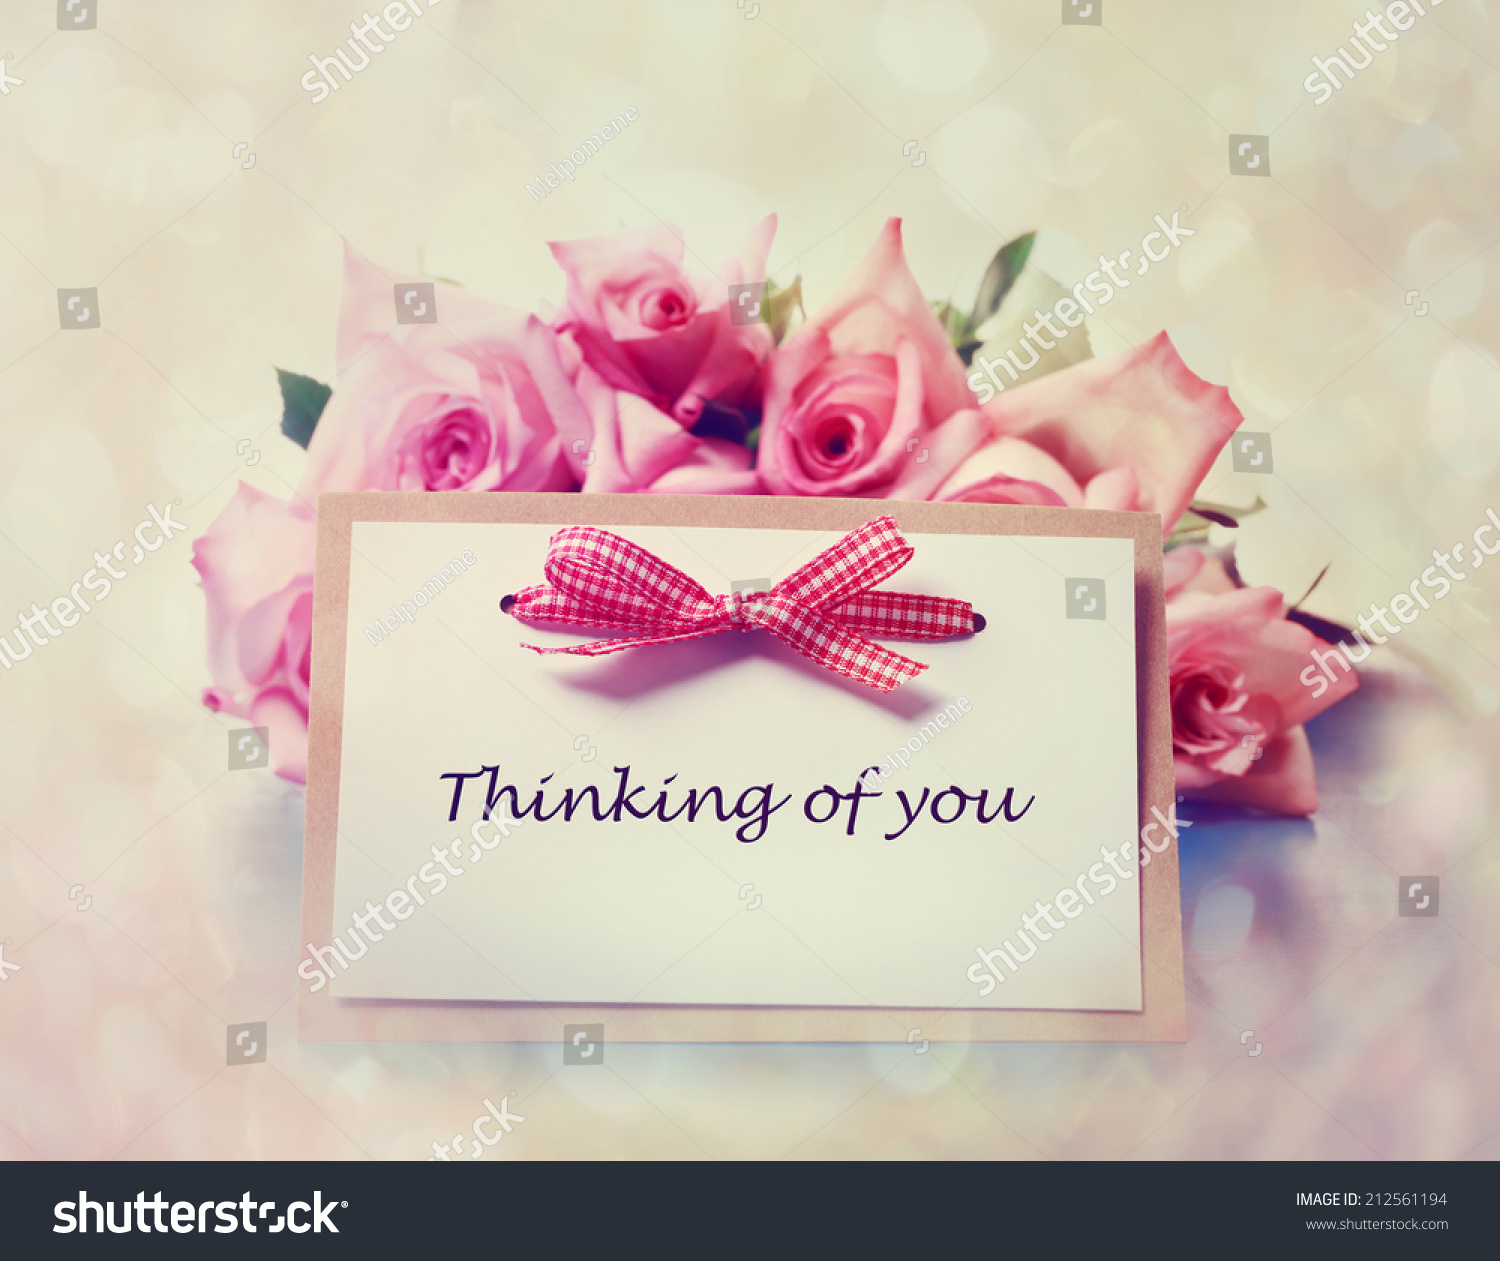 Thinking you greeting card roses stock photo royalty free thinking you greeting card roses stock photo royalty free 212561194 shutterstock m4hsunfo